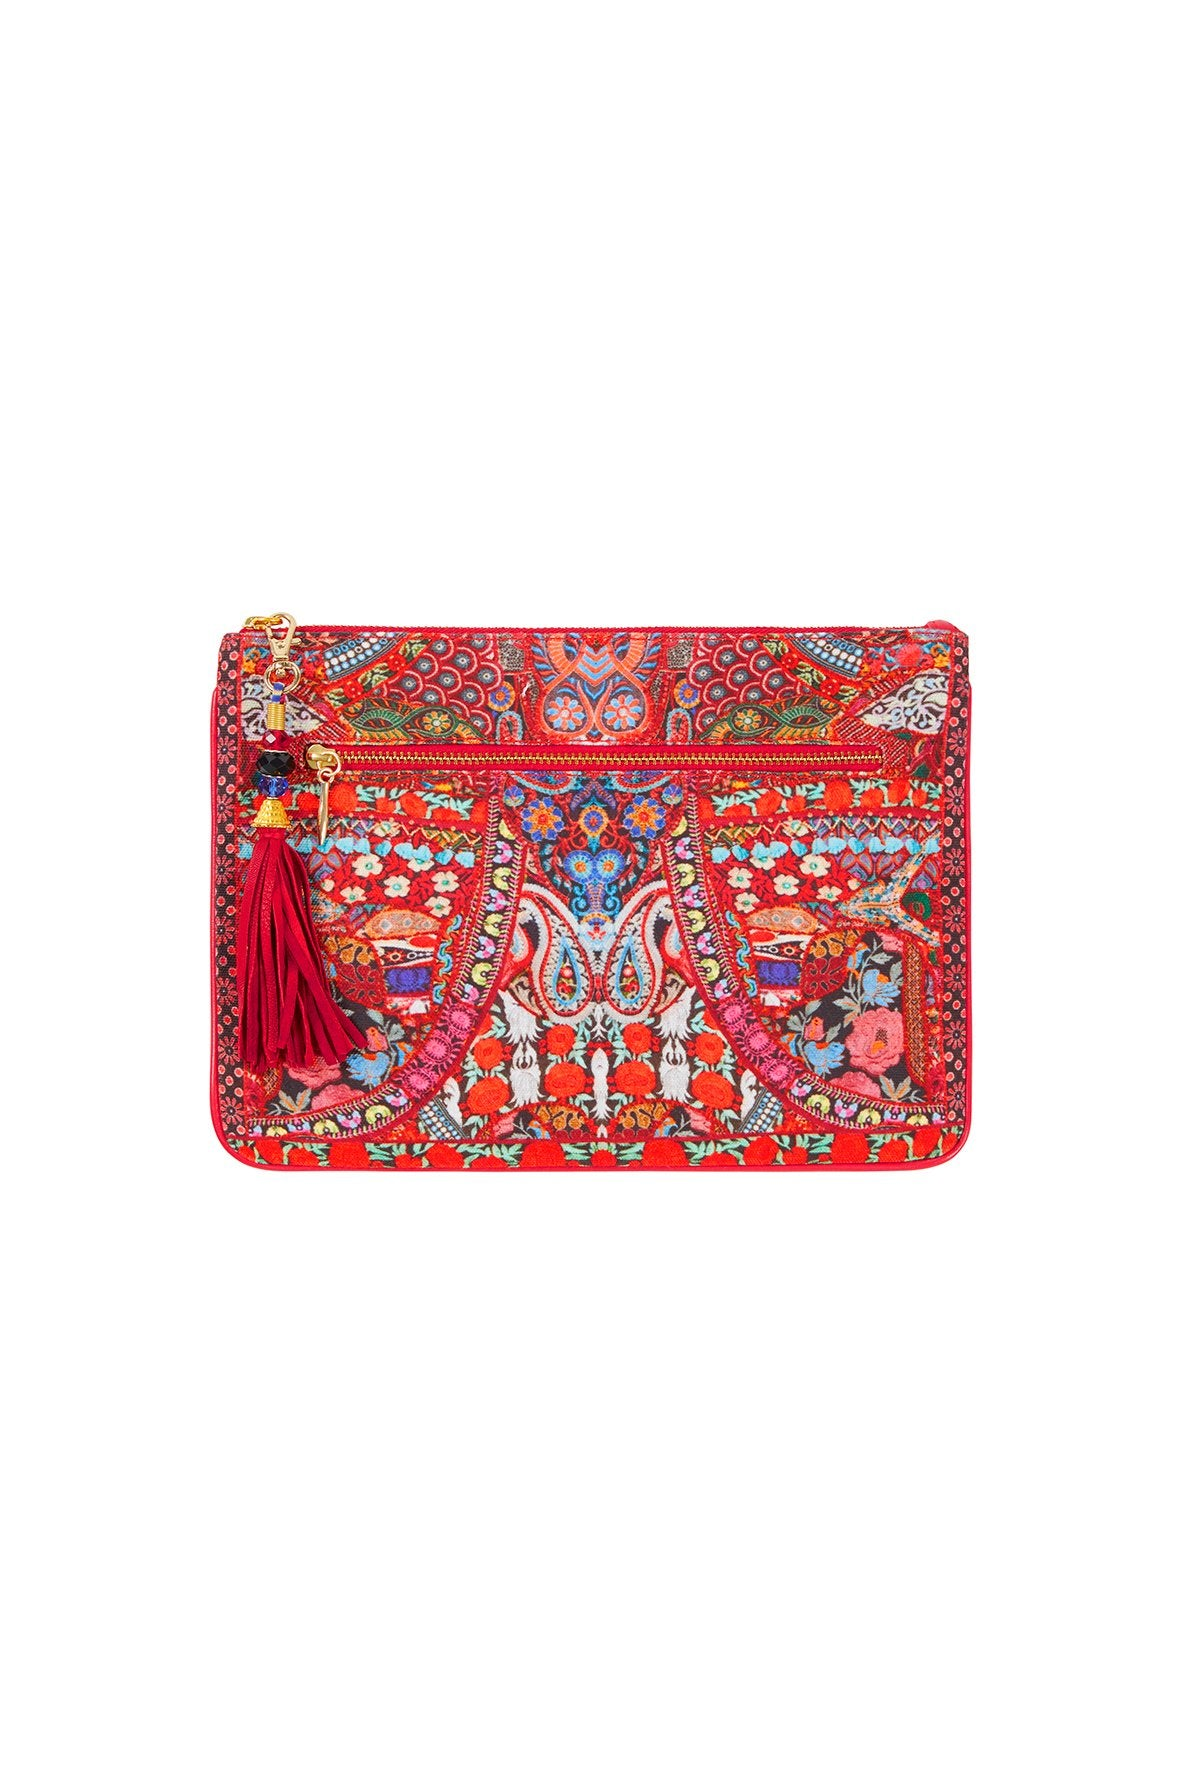 QUEEN ALIKA SMALL CANVAS CLUTCH